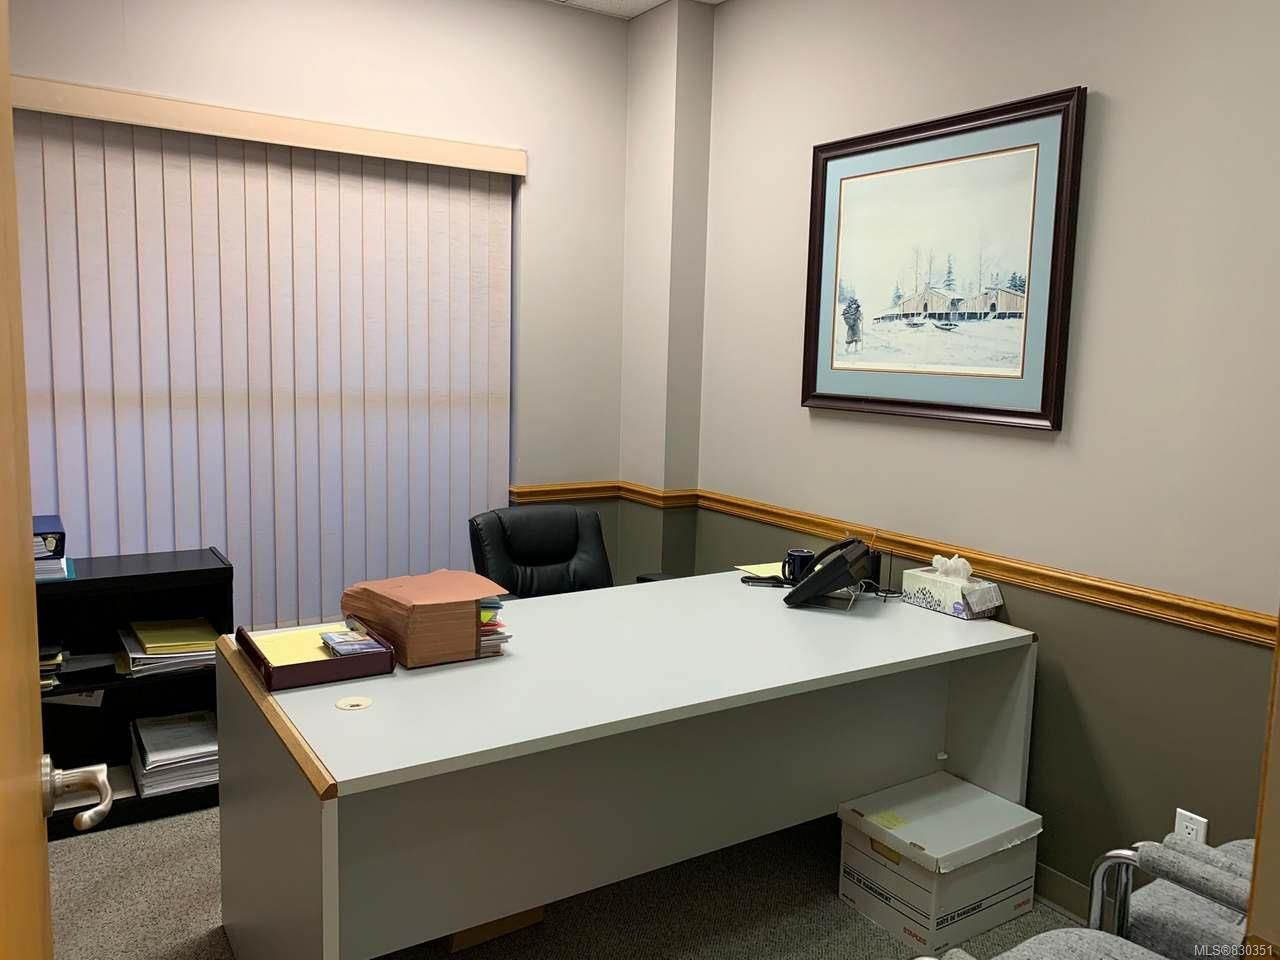 Photo 7: Photos: 2 5144 Metral Dr in NANAIMO: Na Pleasant Valley Office for lease (Nanaimo)  : MLS®# 830351